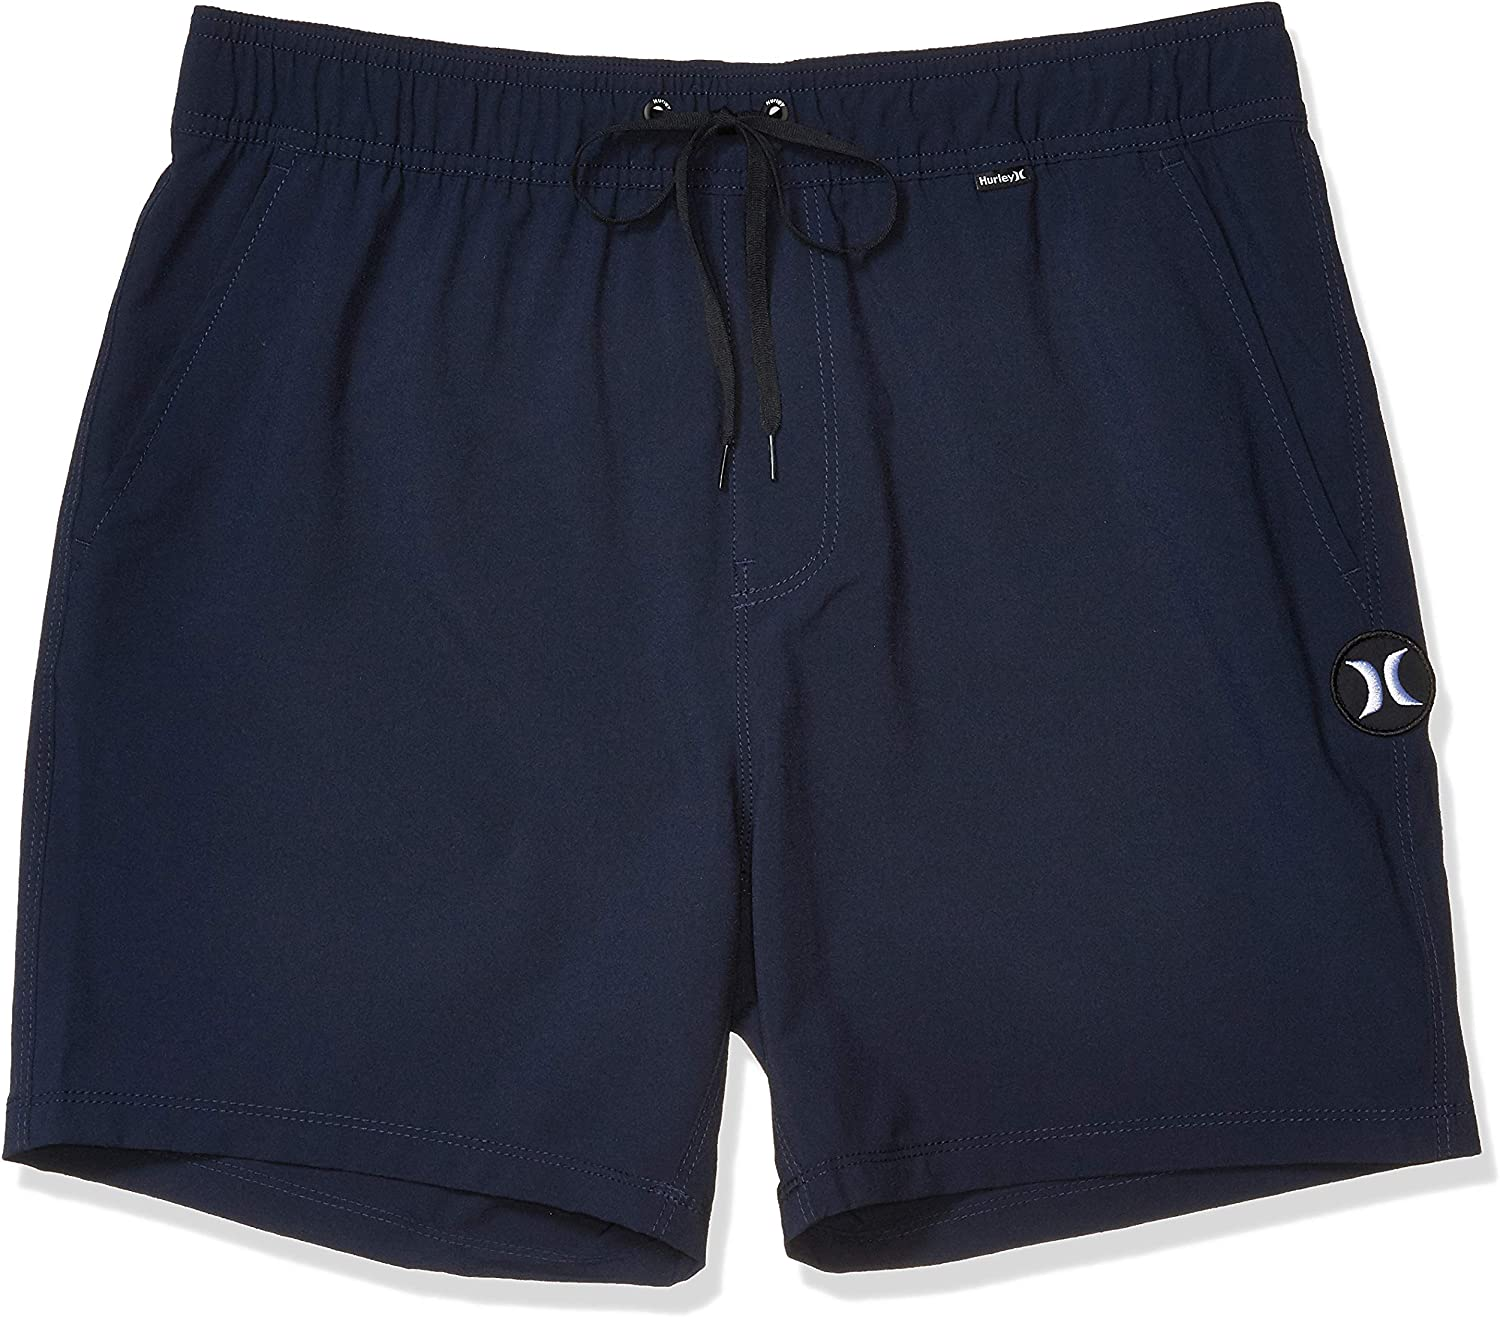 Hurley Men's One and Only Board Short